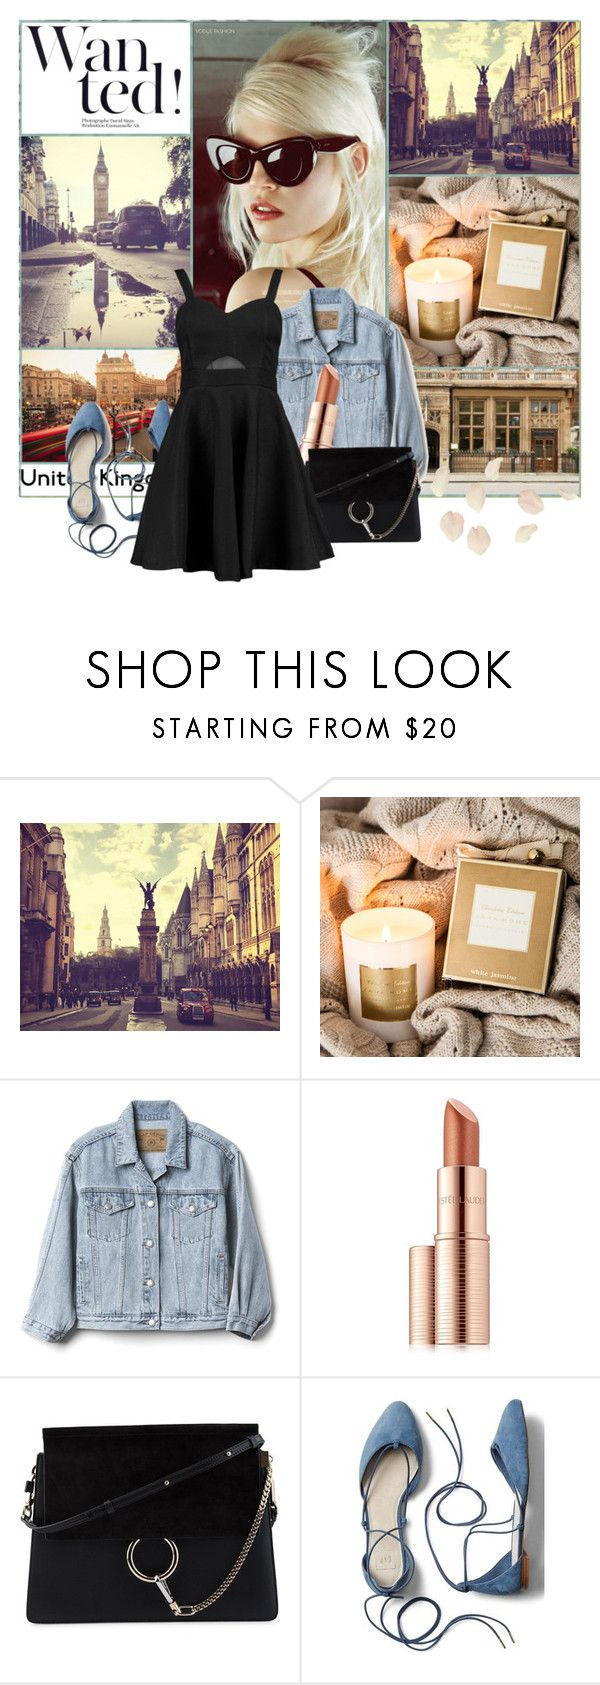 """""""London: Wanted!"""" by lysianna ❤ liked on Polyvore featuring TAXI, Zara Home, Gap, Estée Lauder, Chloé and Boohoo"""